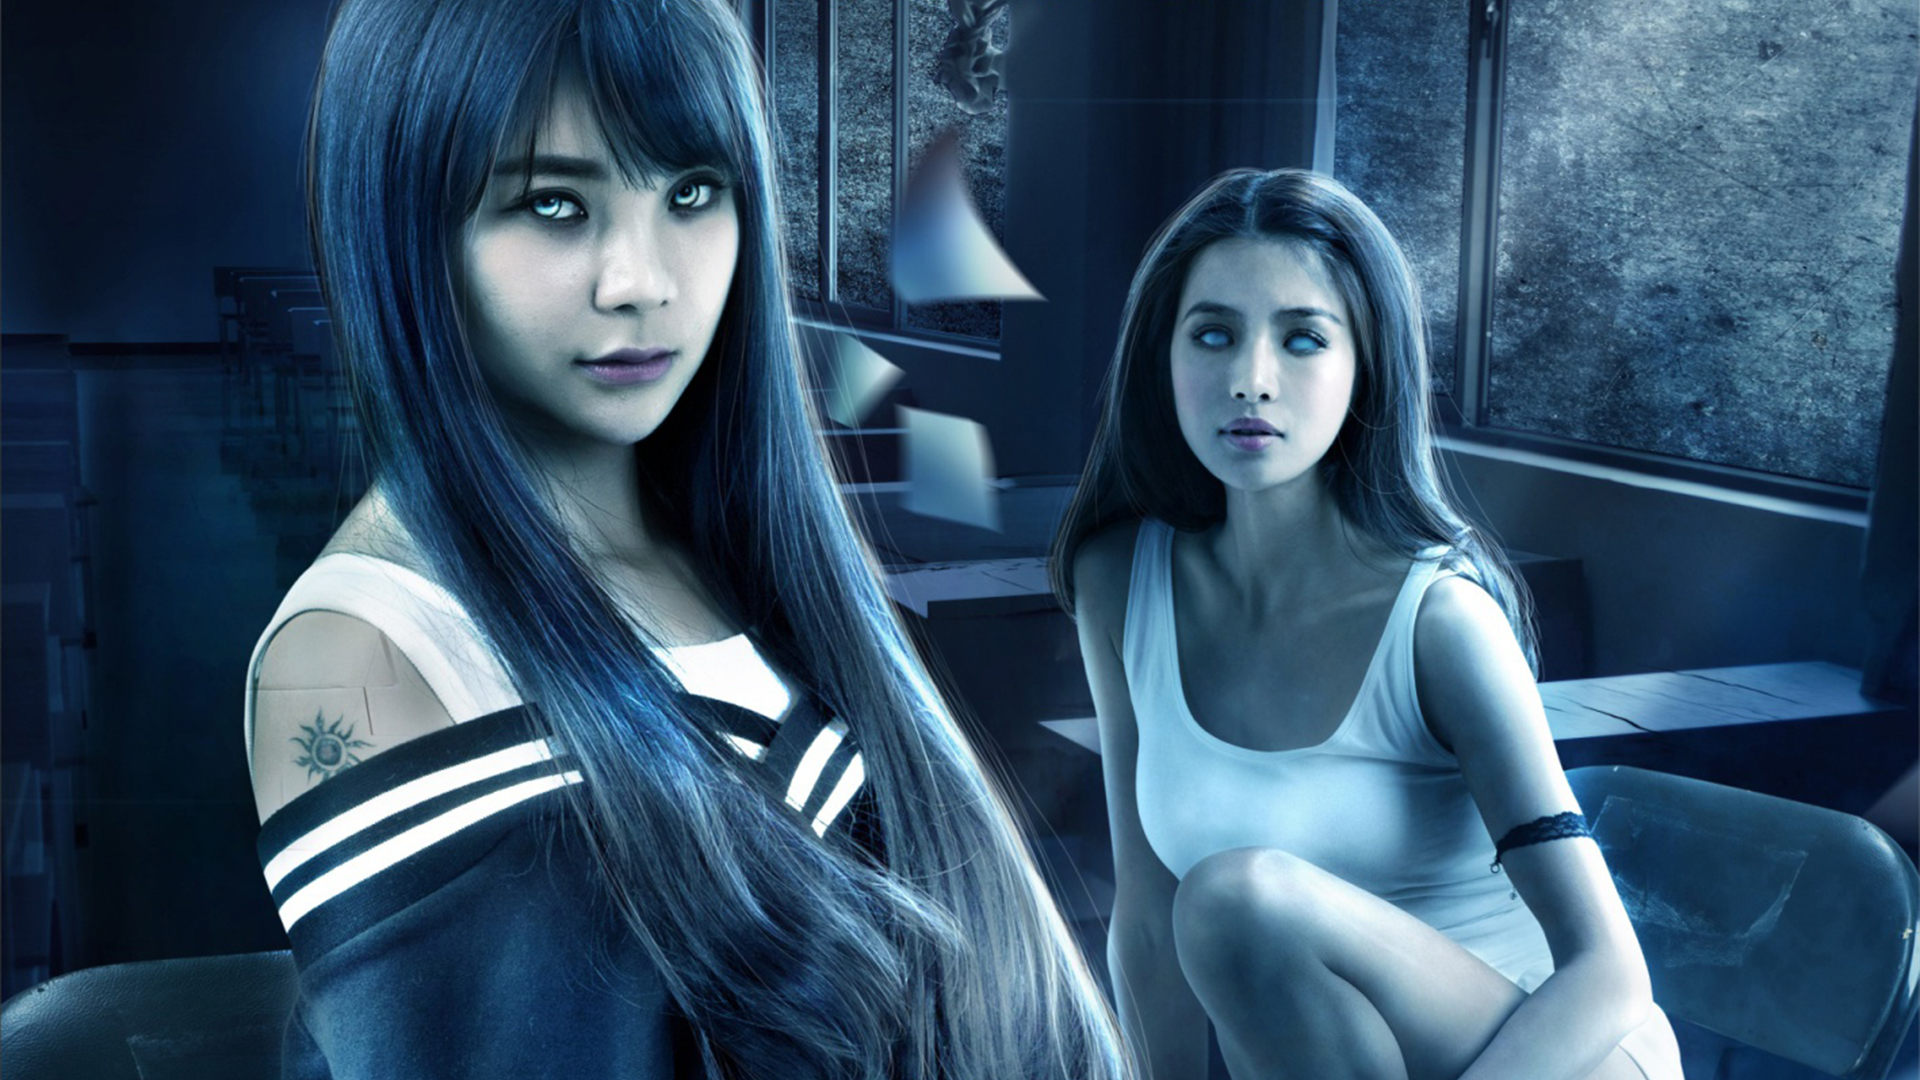 Haunted Dormitory White Paper Girl on Amazon Prime Video UK